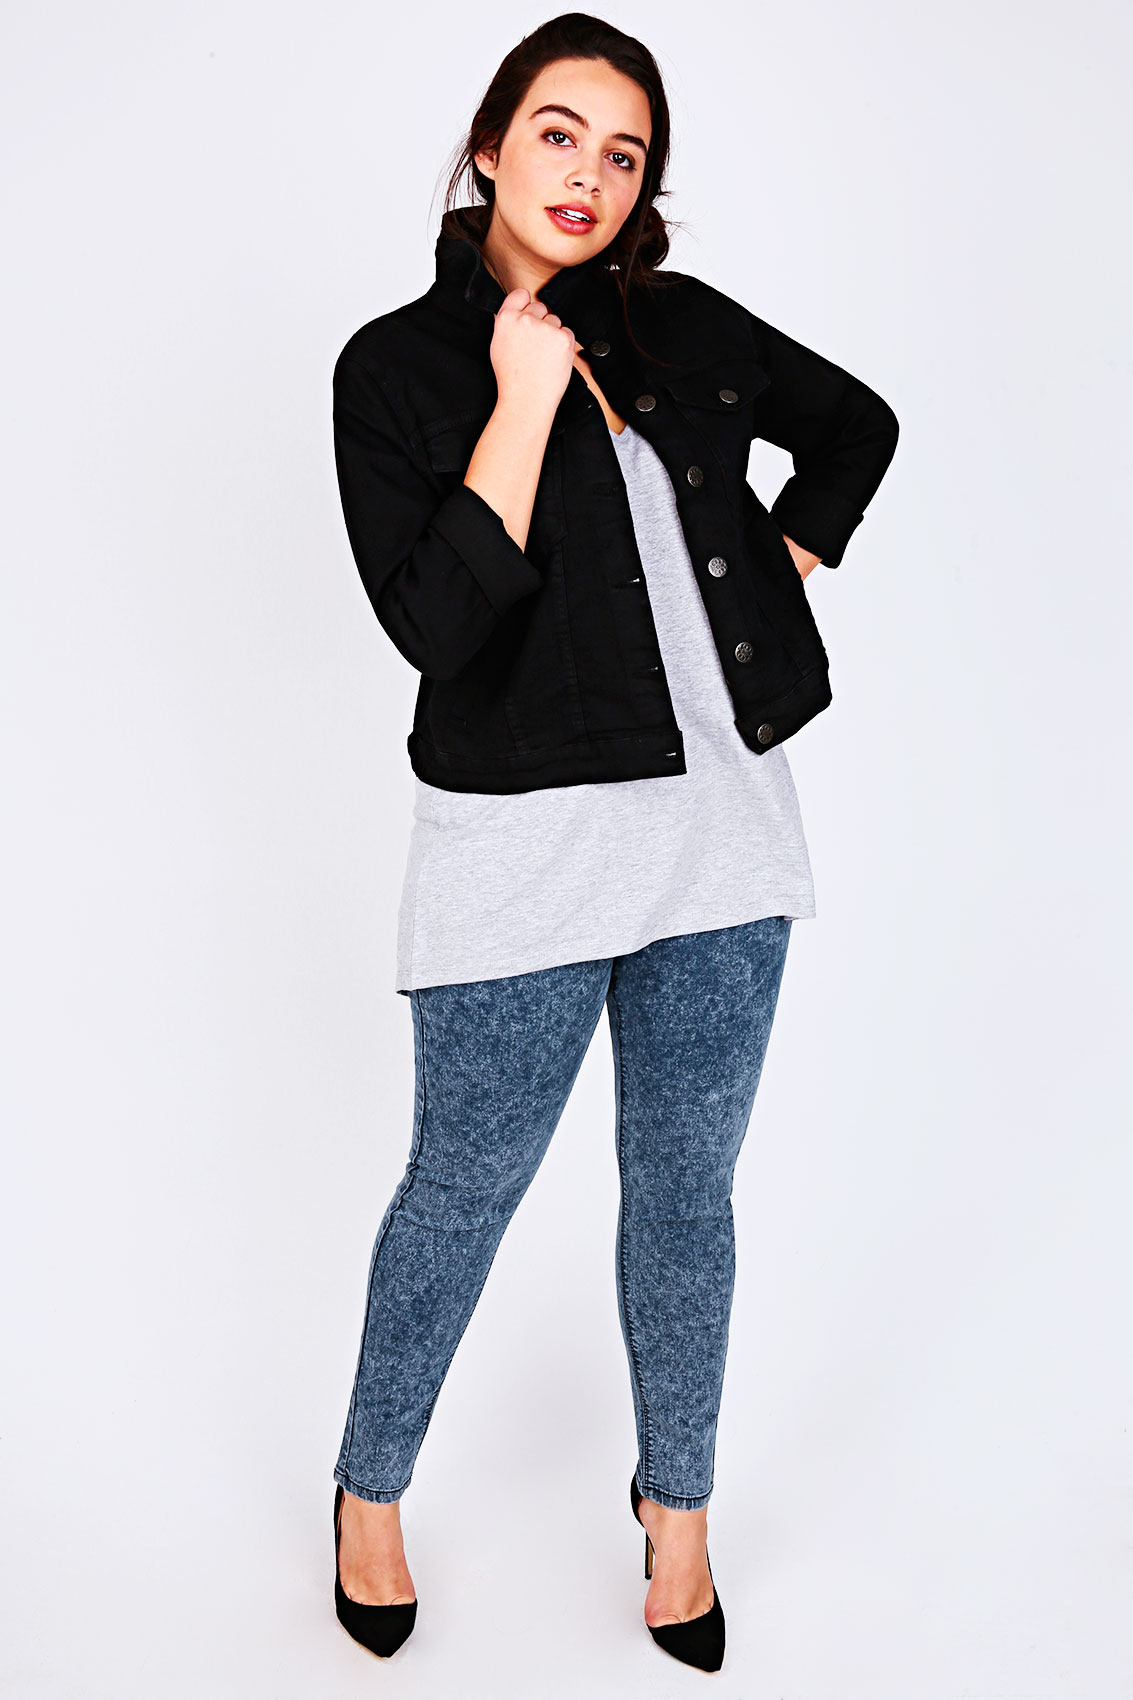 Legging Outfits for Plus Size Girls. Wearing the right thing at a right time is a key to look chaplin-favor.tk size you up in less than thirty seconds of your meeting them and your clothes have a lot to do with how others perceive you.